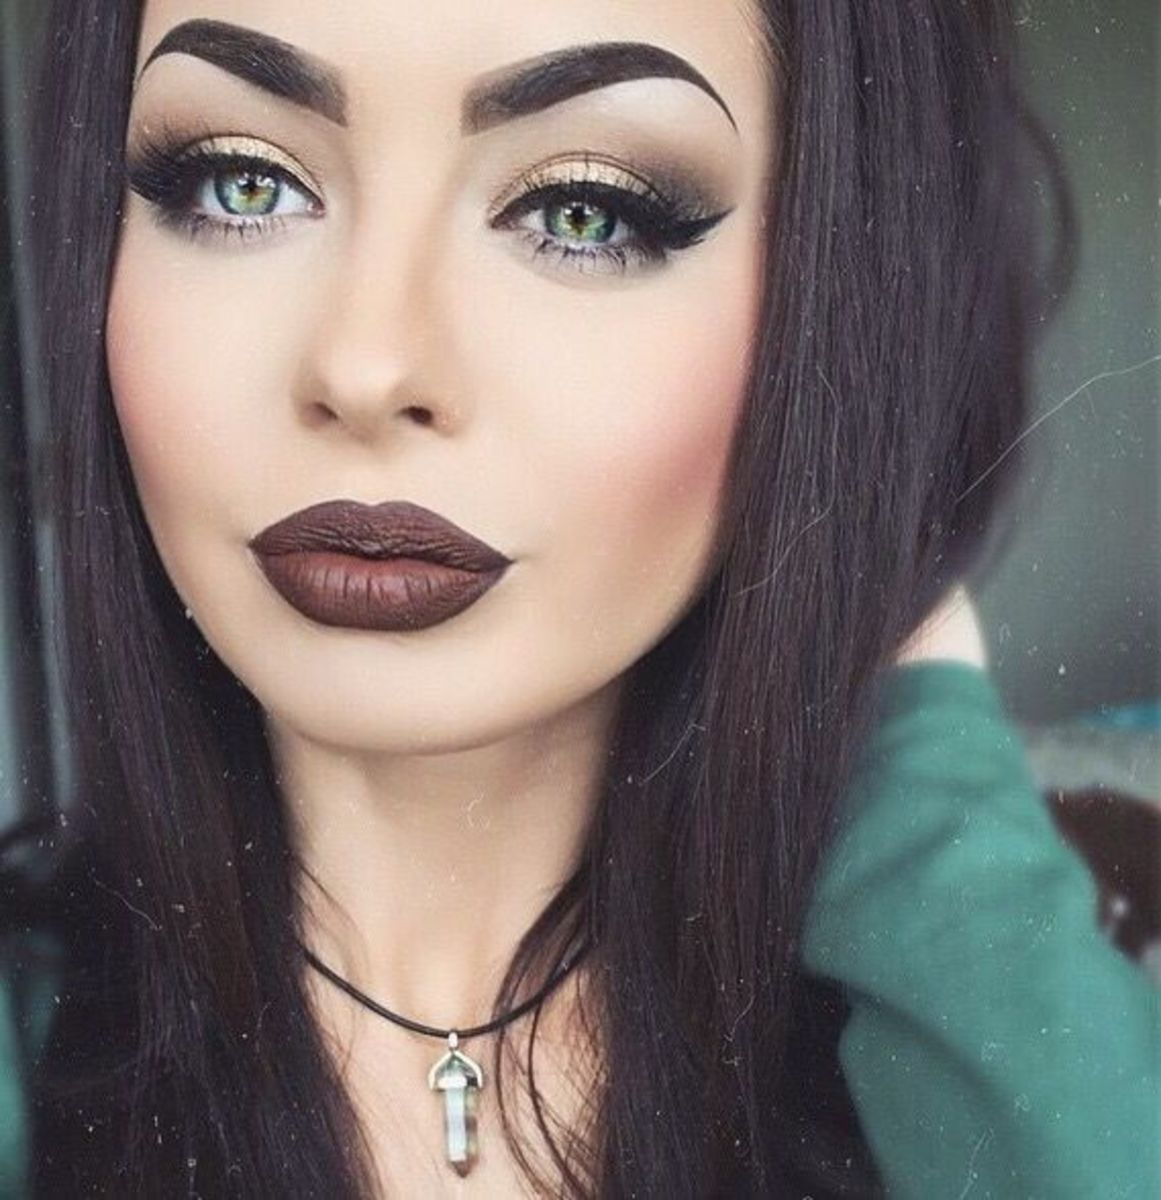 Seemingly a Very Good-Looking Woman Using Heavy Makeup